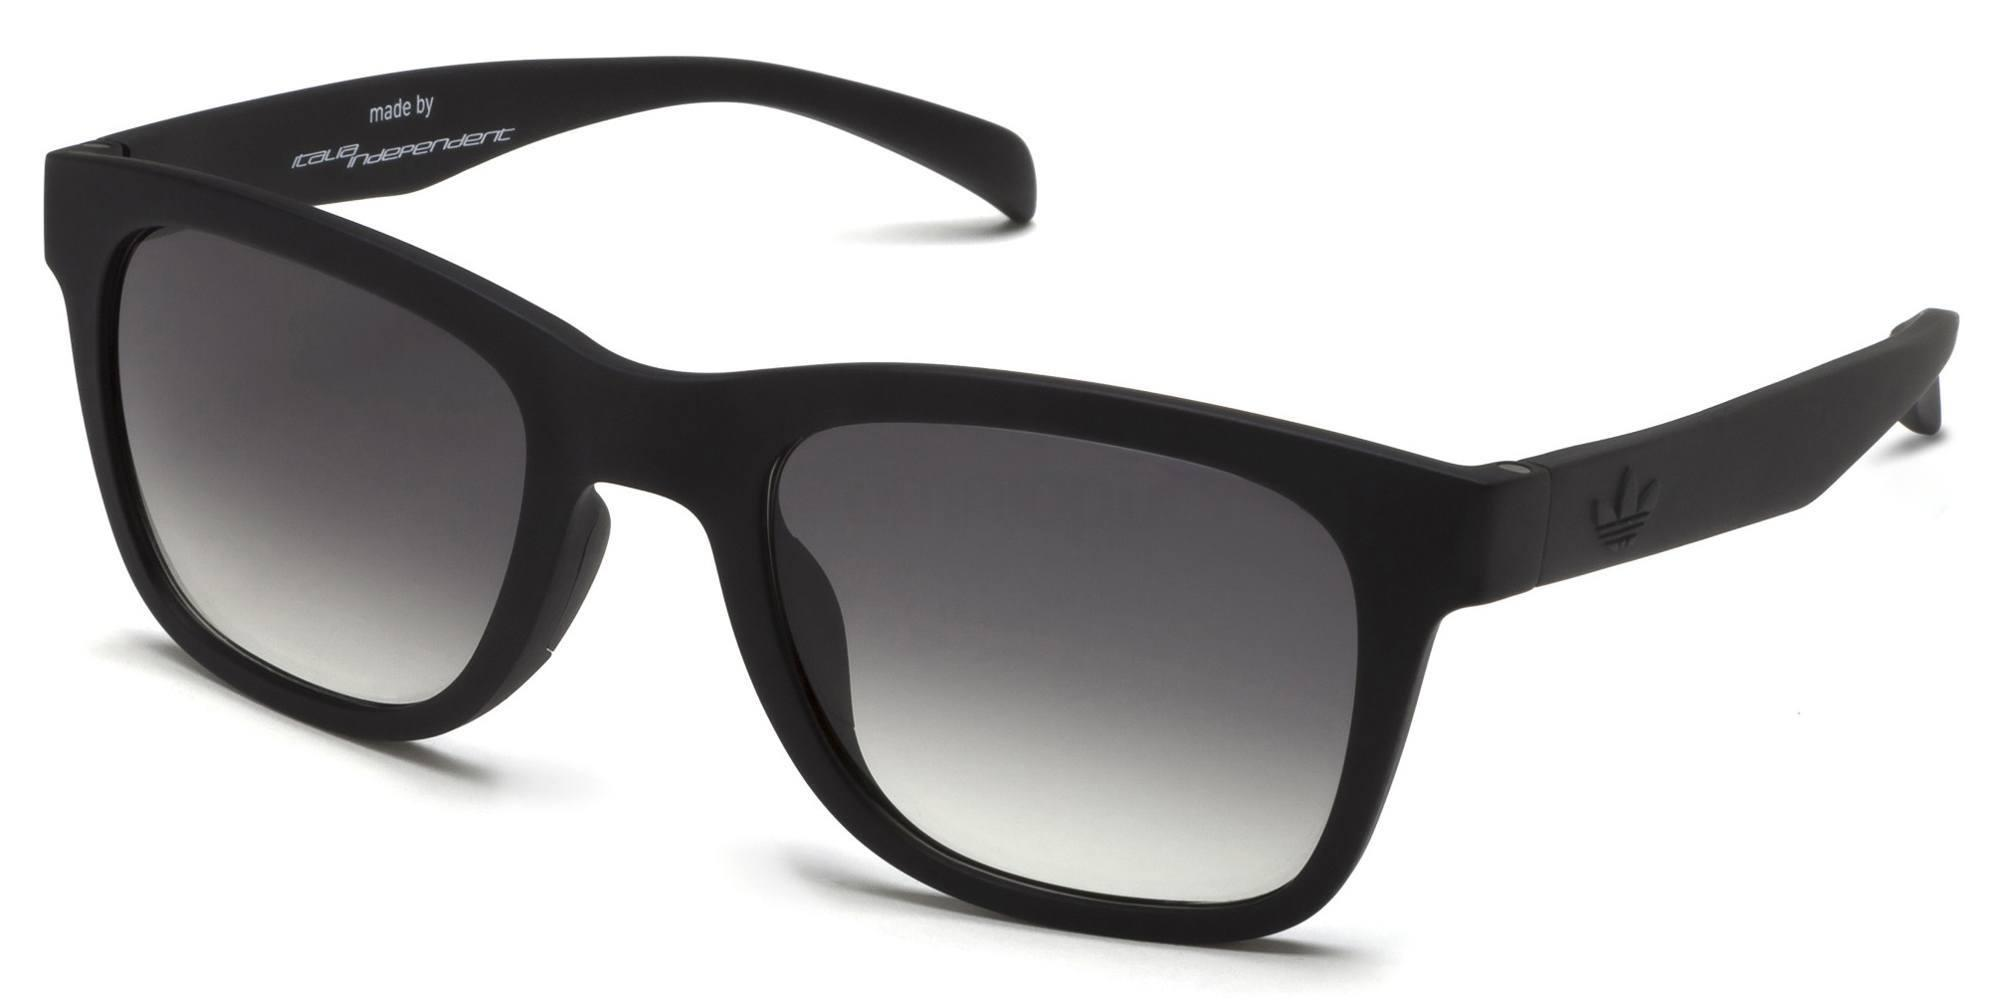 009.009 AOR004 Sunglasses, Adidas Originals